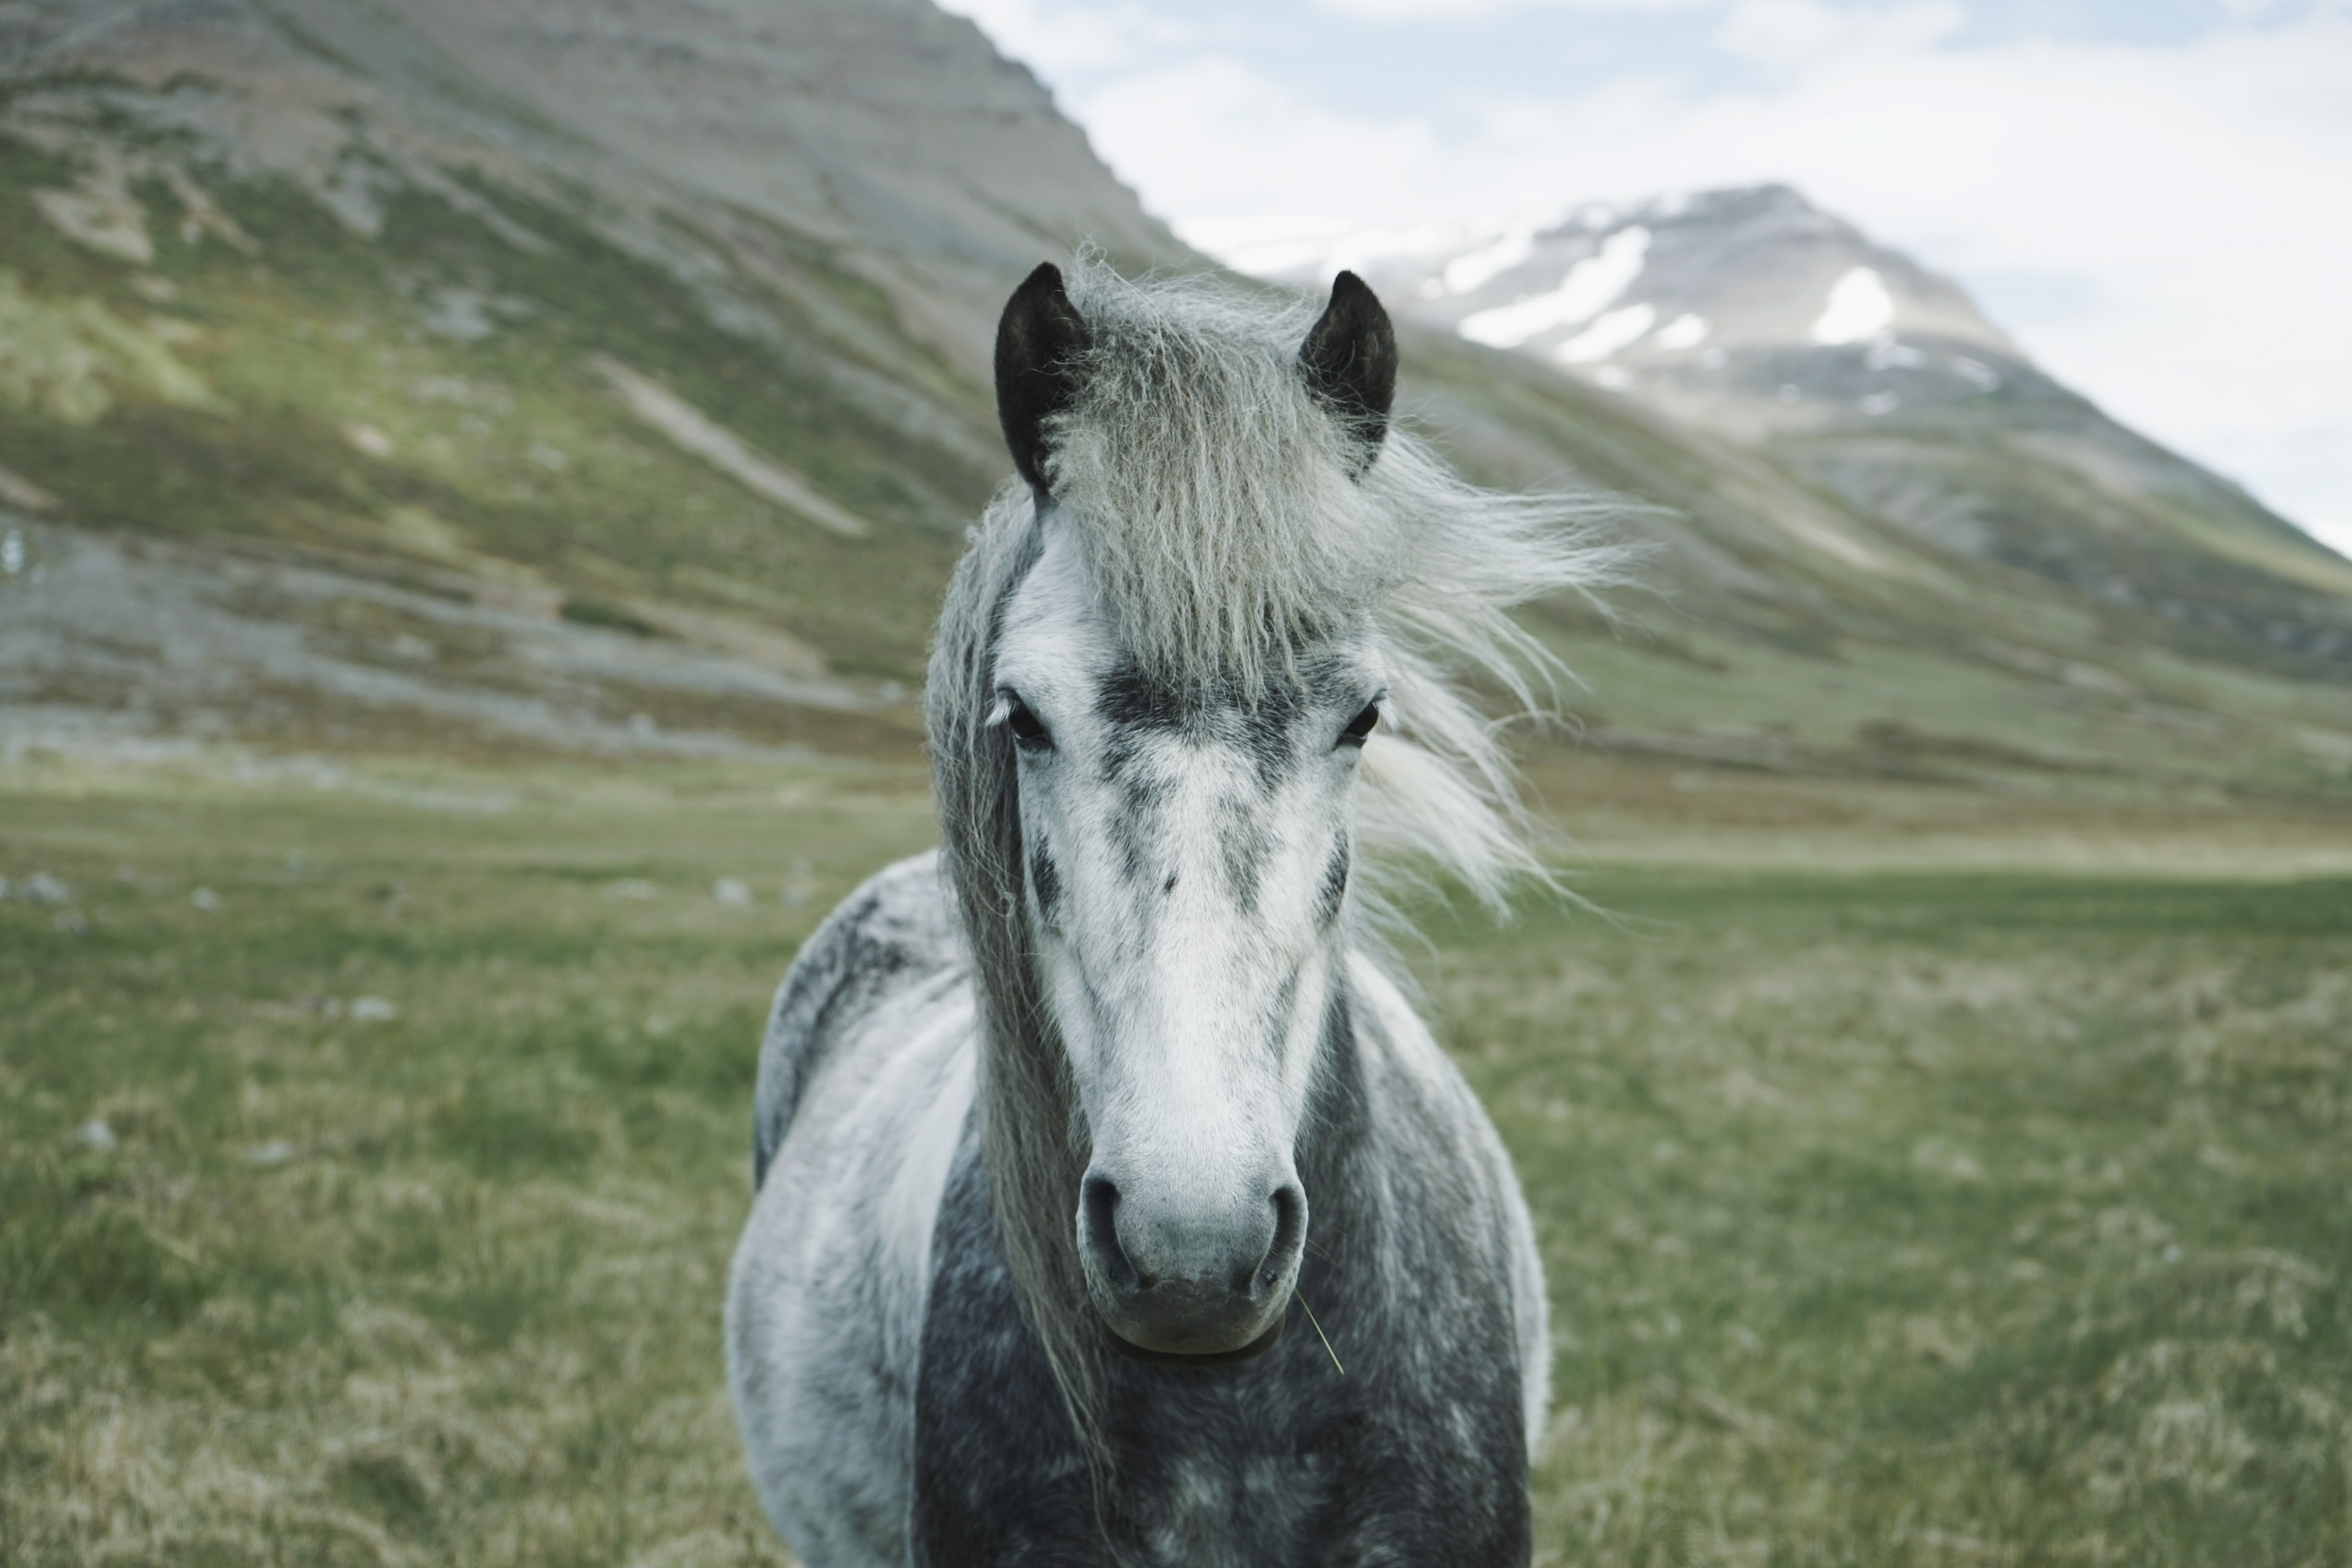 close-up photography of white and gray horse standing on green grass field